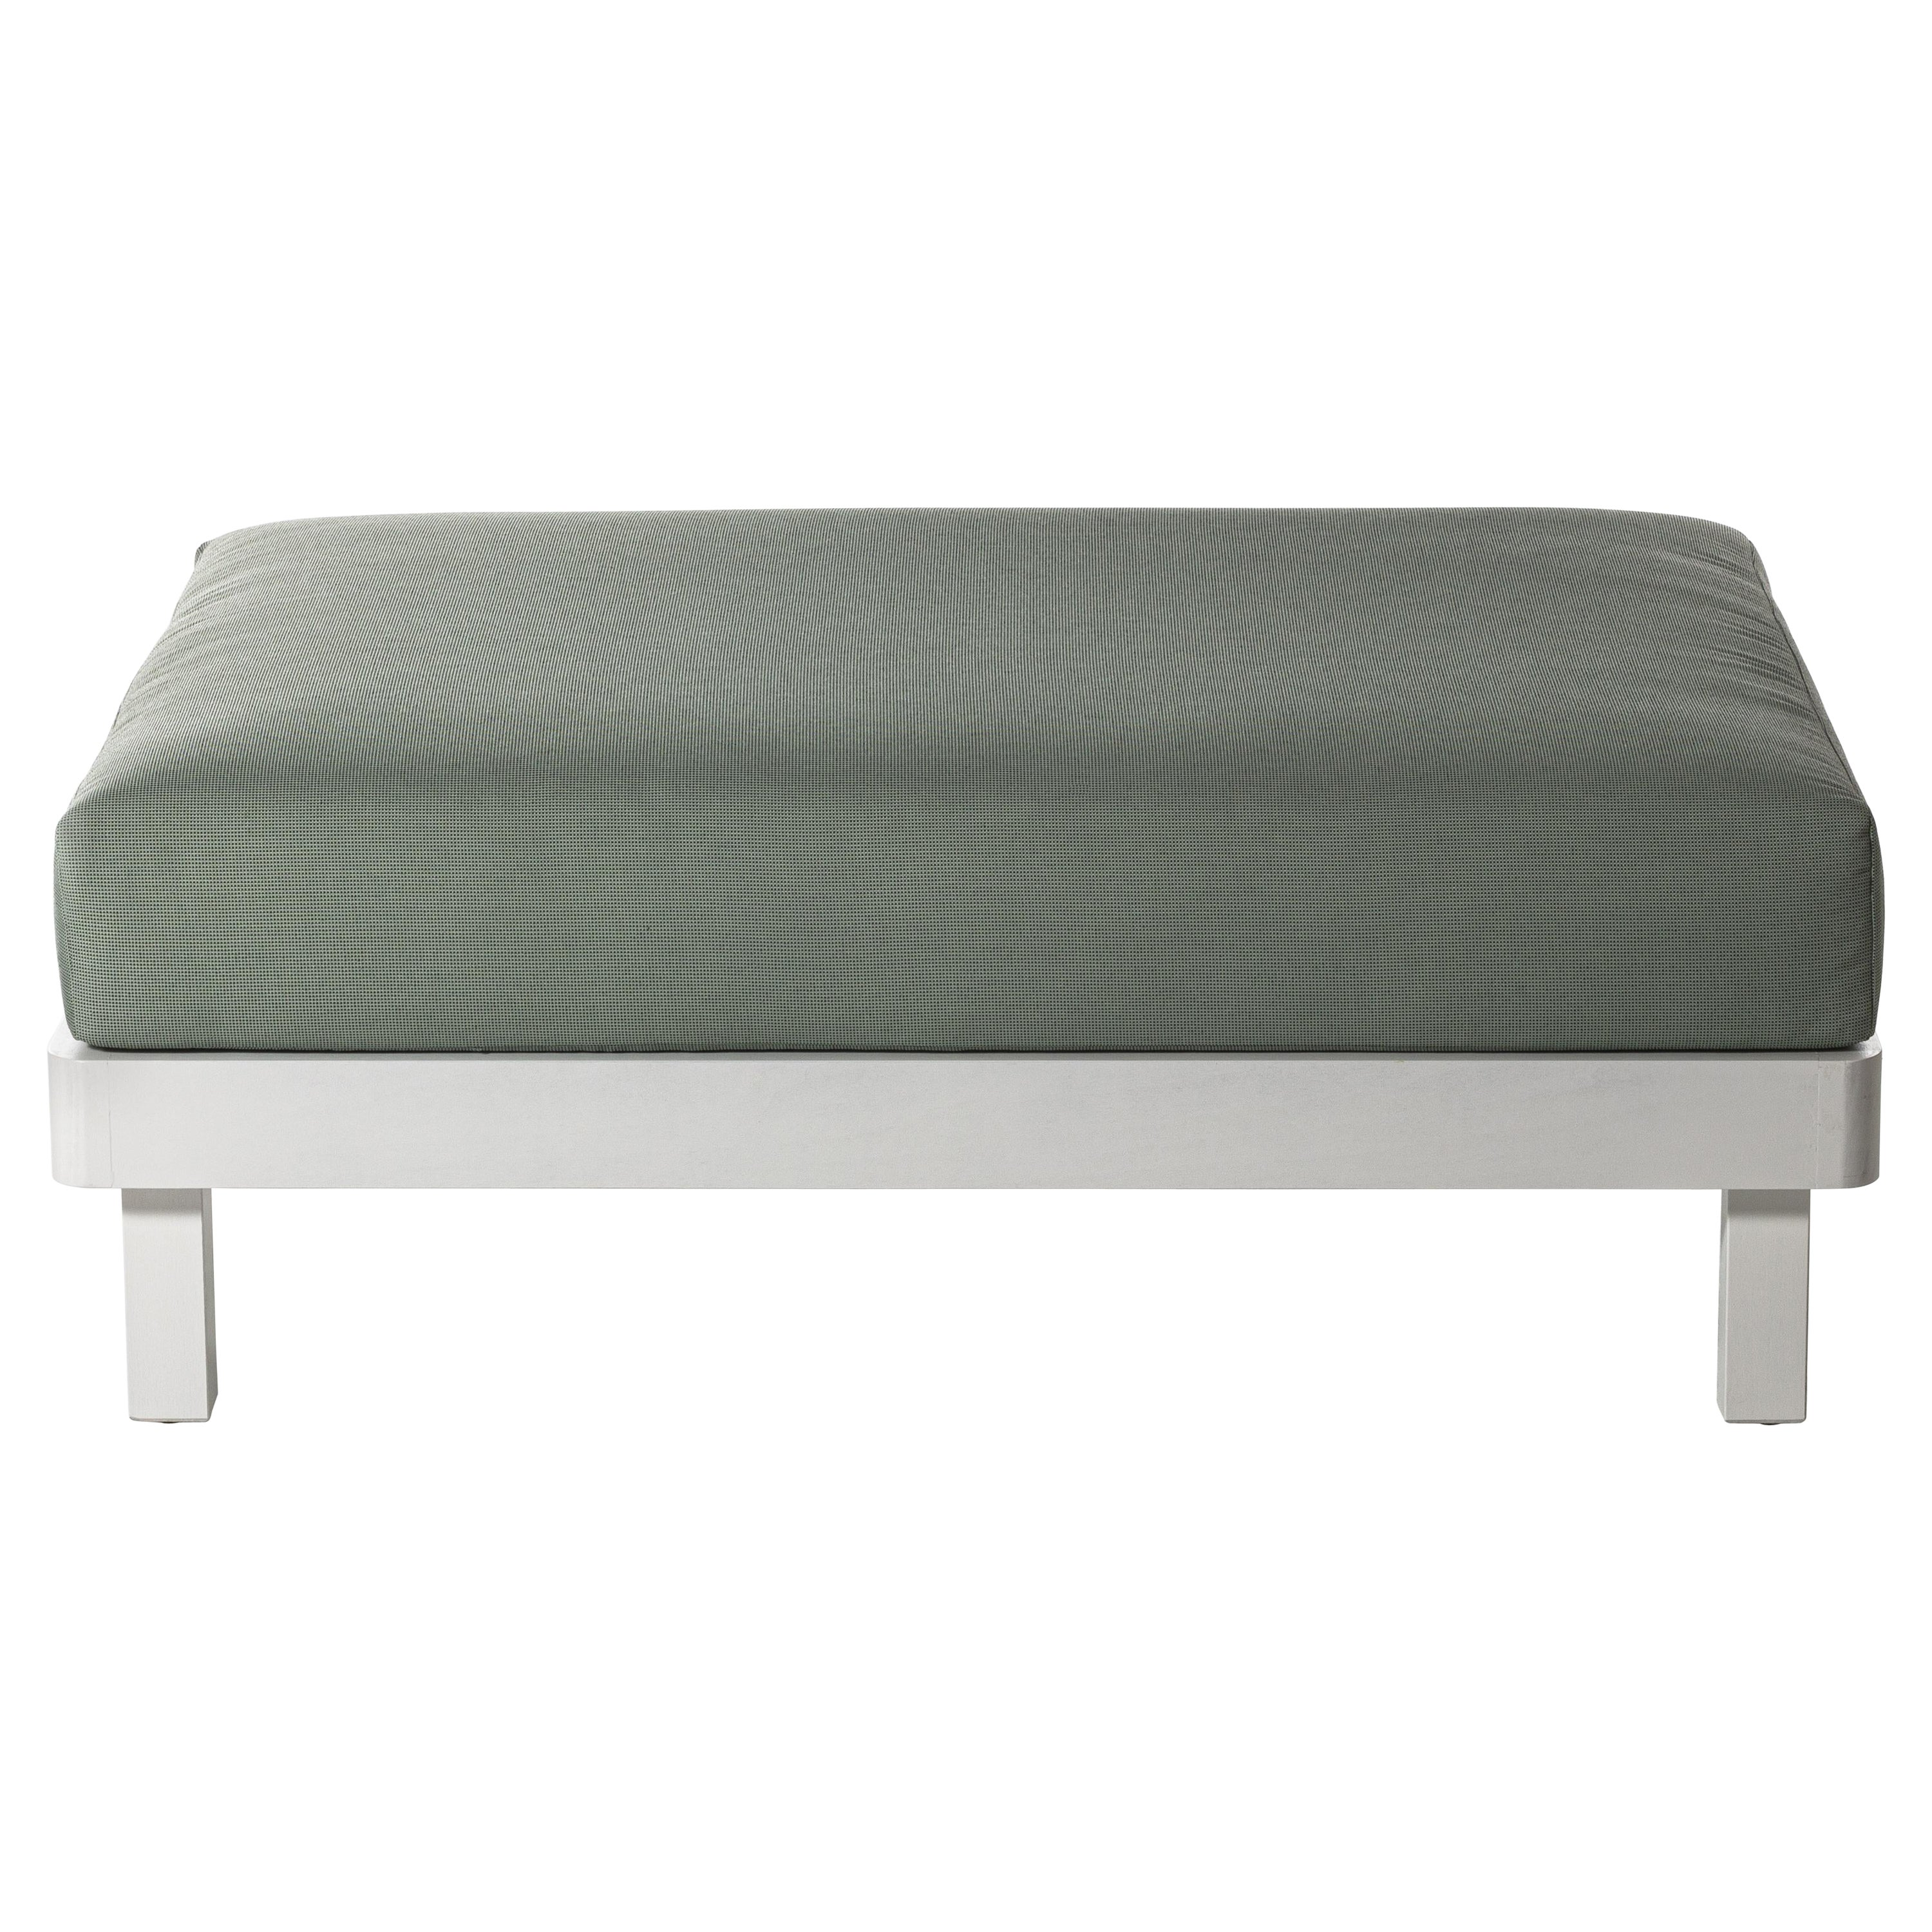 Gervasoni Win Ottoman in Dublin 05 Upholstery with White Lacquered Aluminum Base